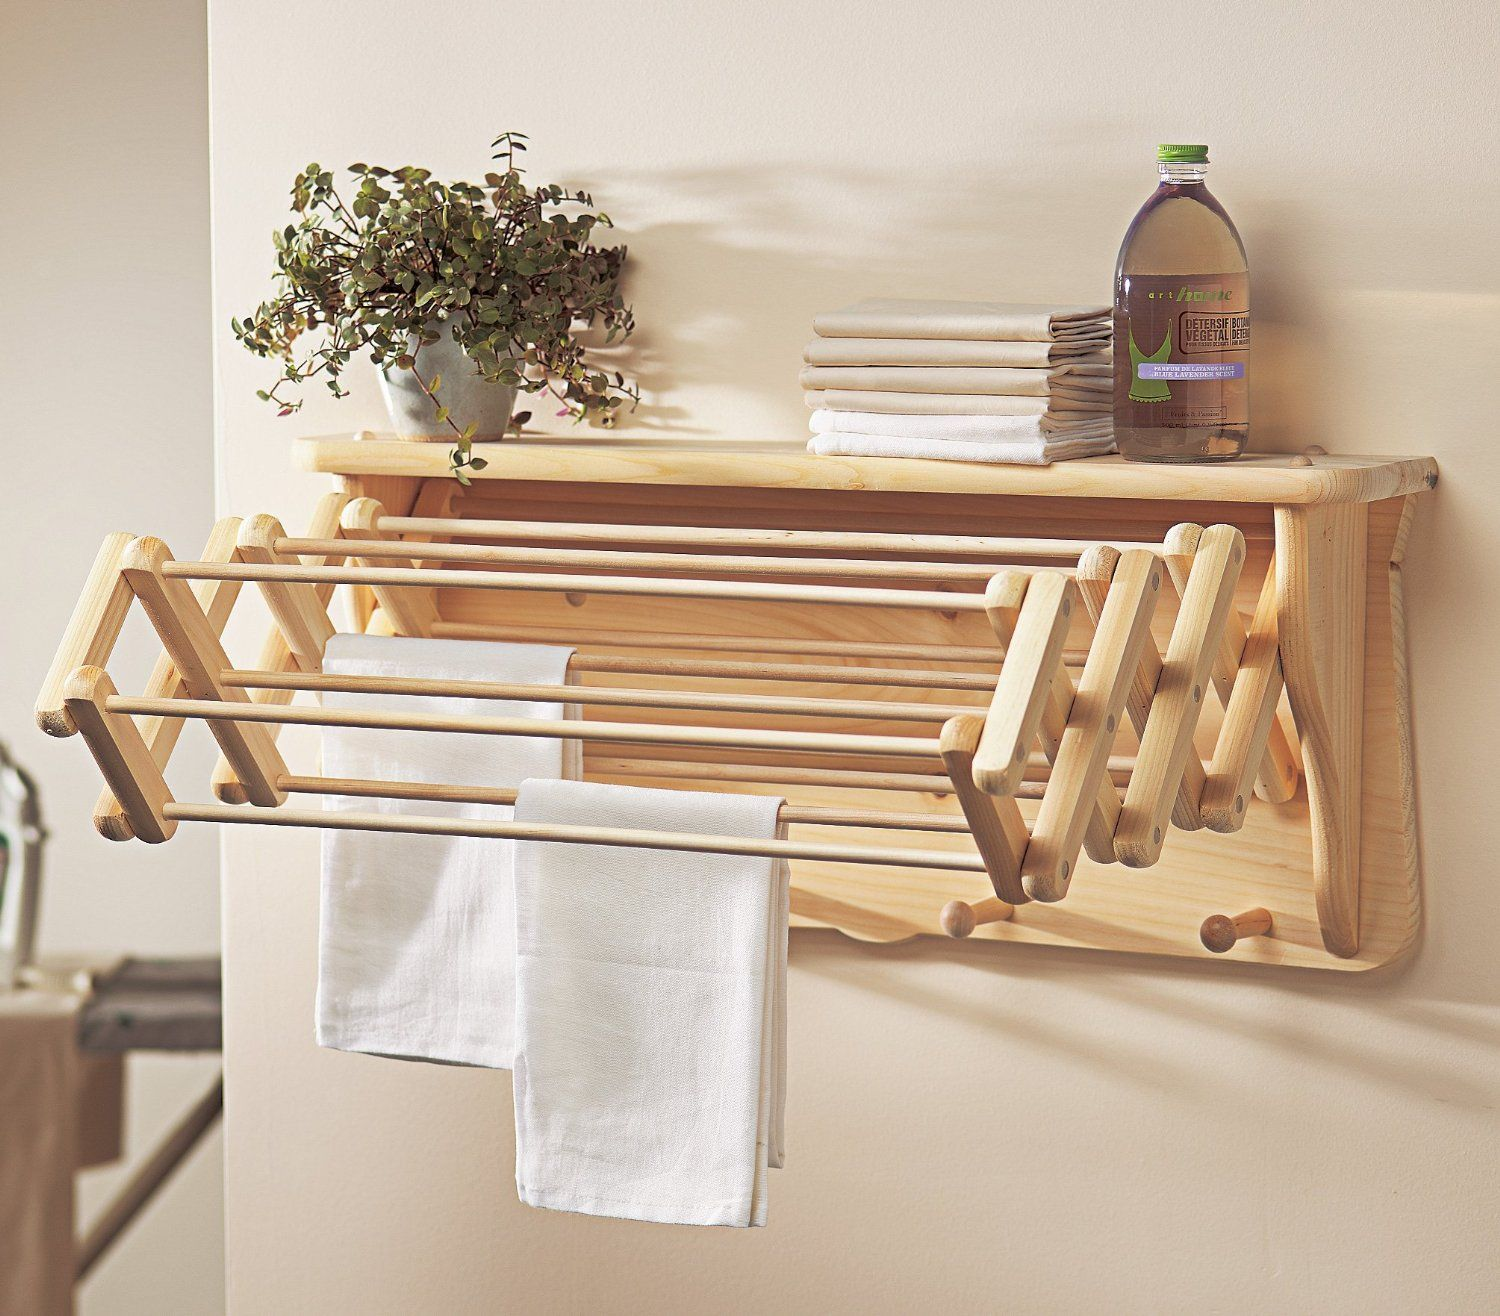 Clothes Drying Rack Target Great Drying Rack Target For Laundry Room Organization Drying Rack